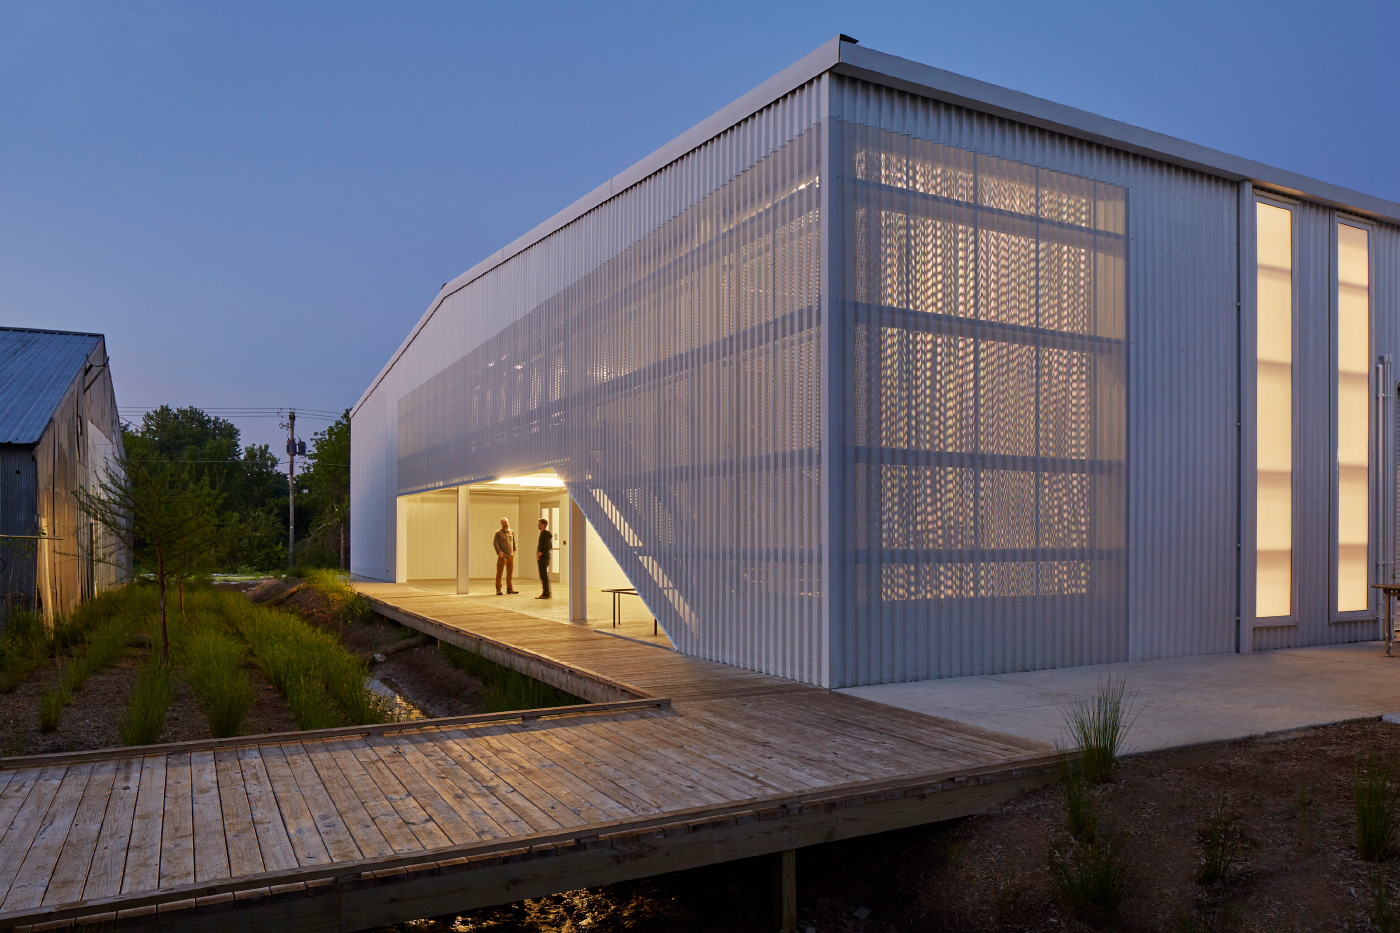 A warehouse clad in perforated aluminum, for the University of Arkansas